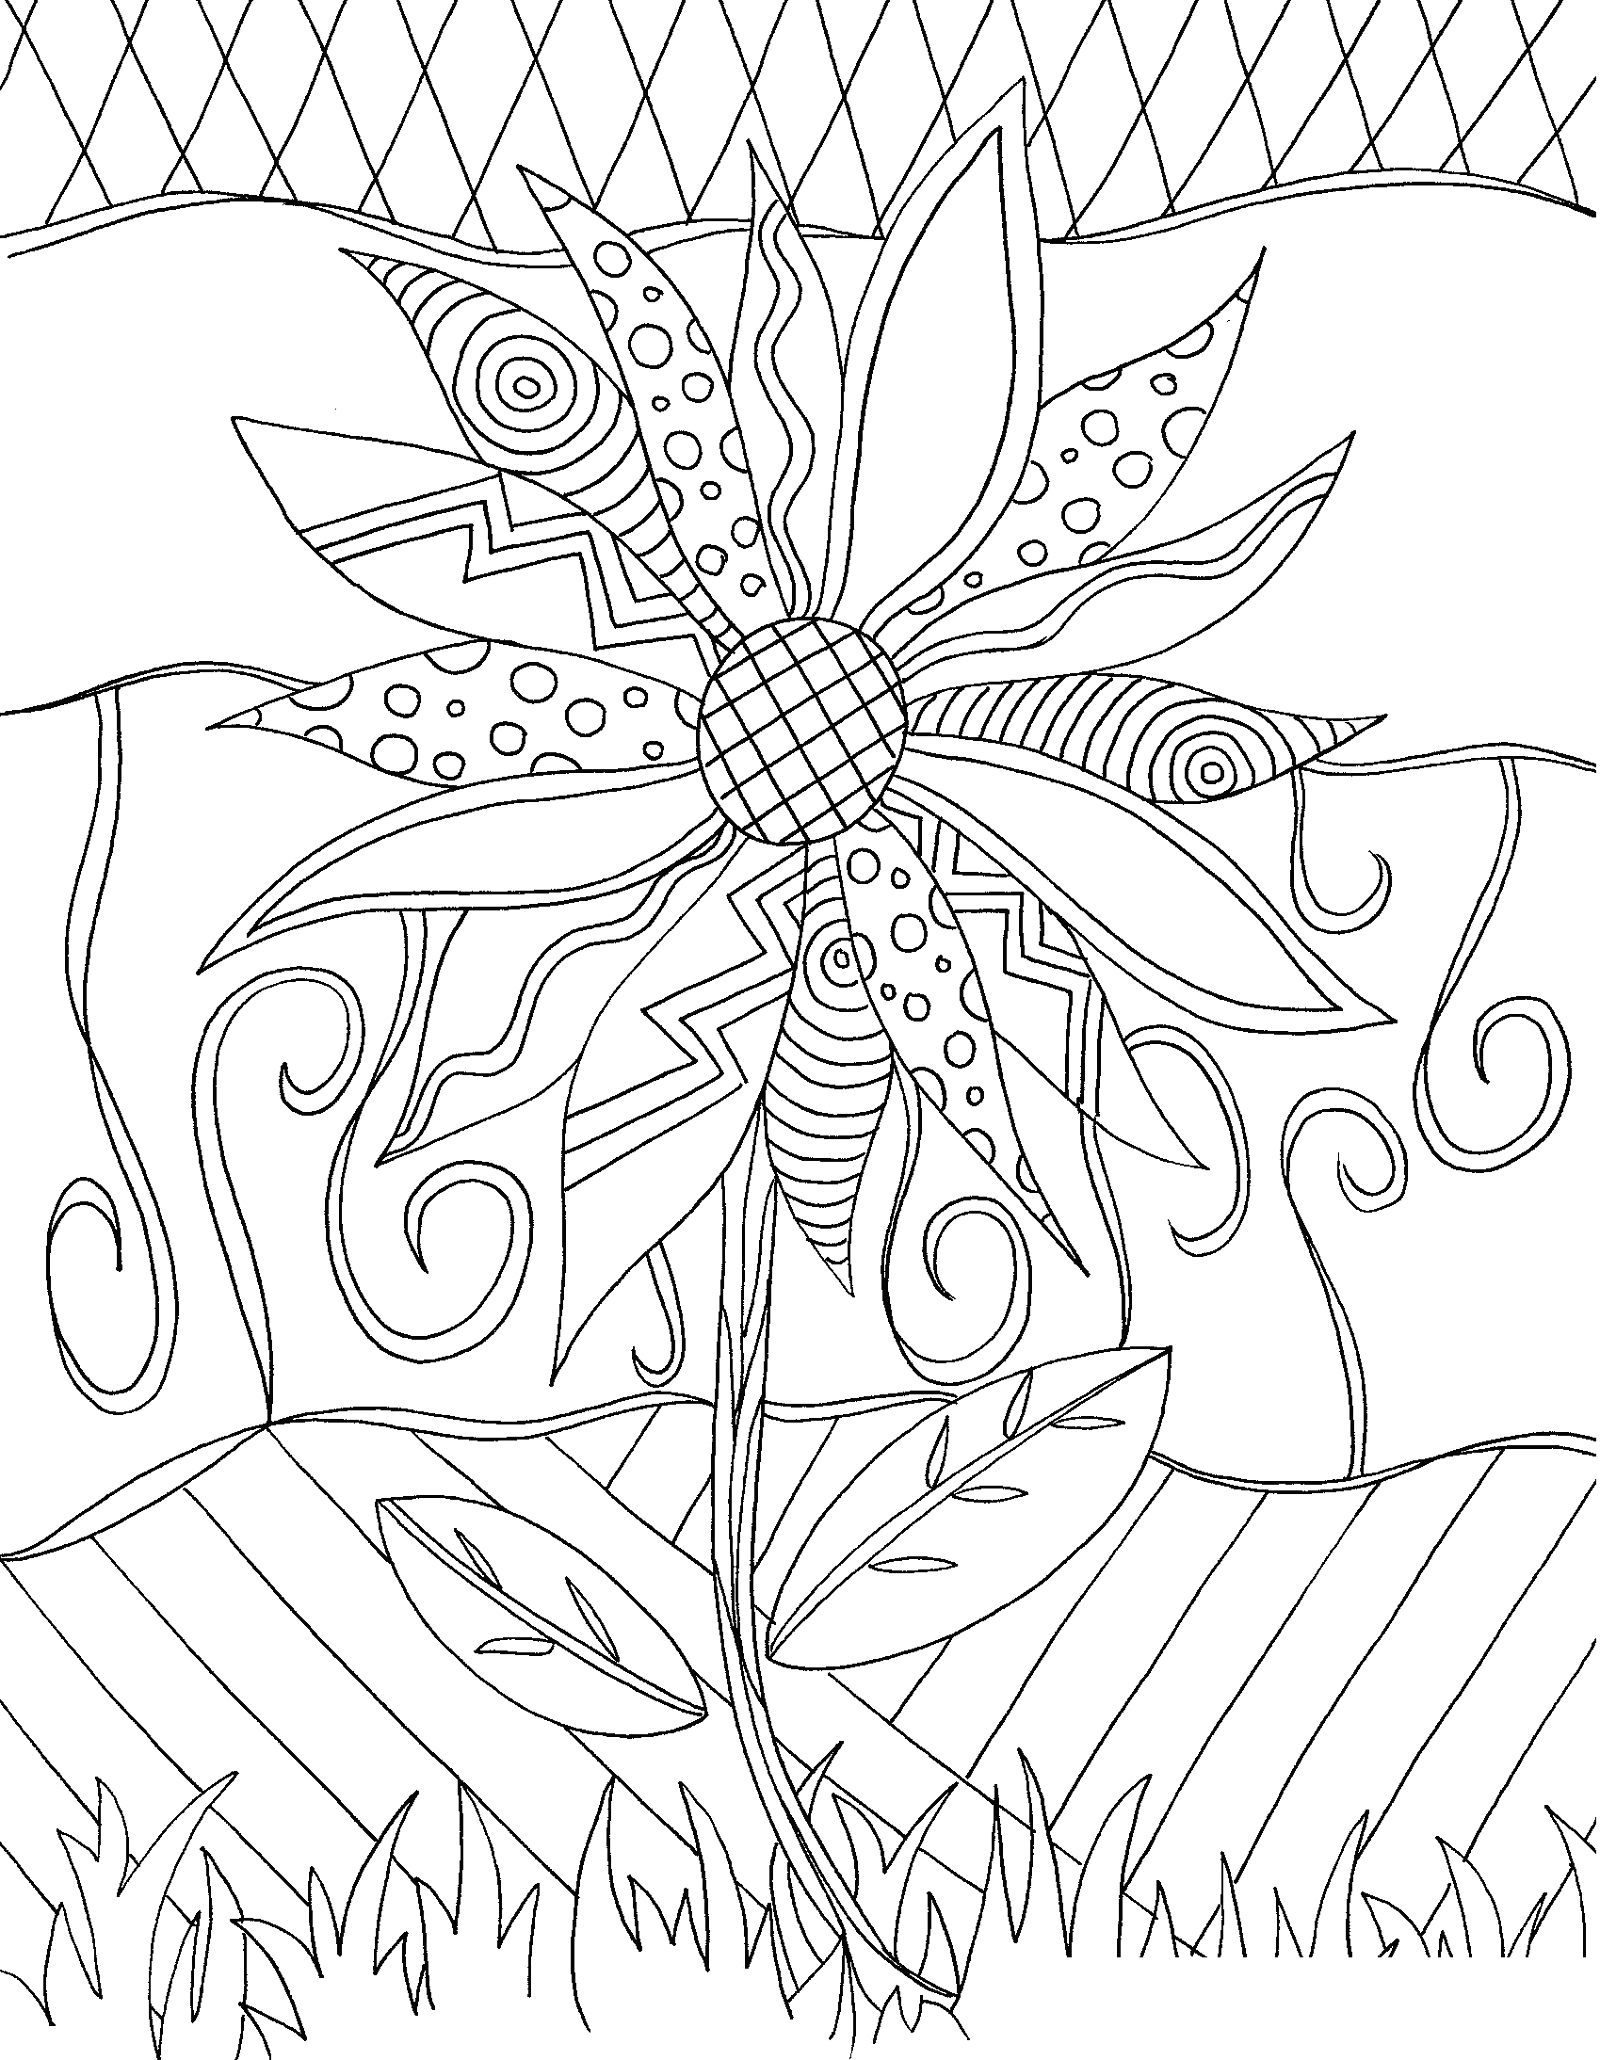 Free Coloring Pages to Print and Color for Adults Cool Coloring Pages for Adults